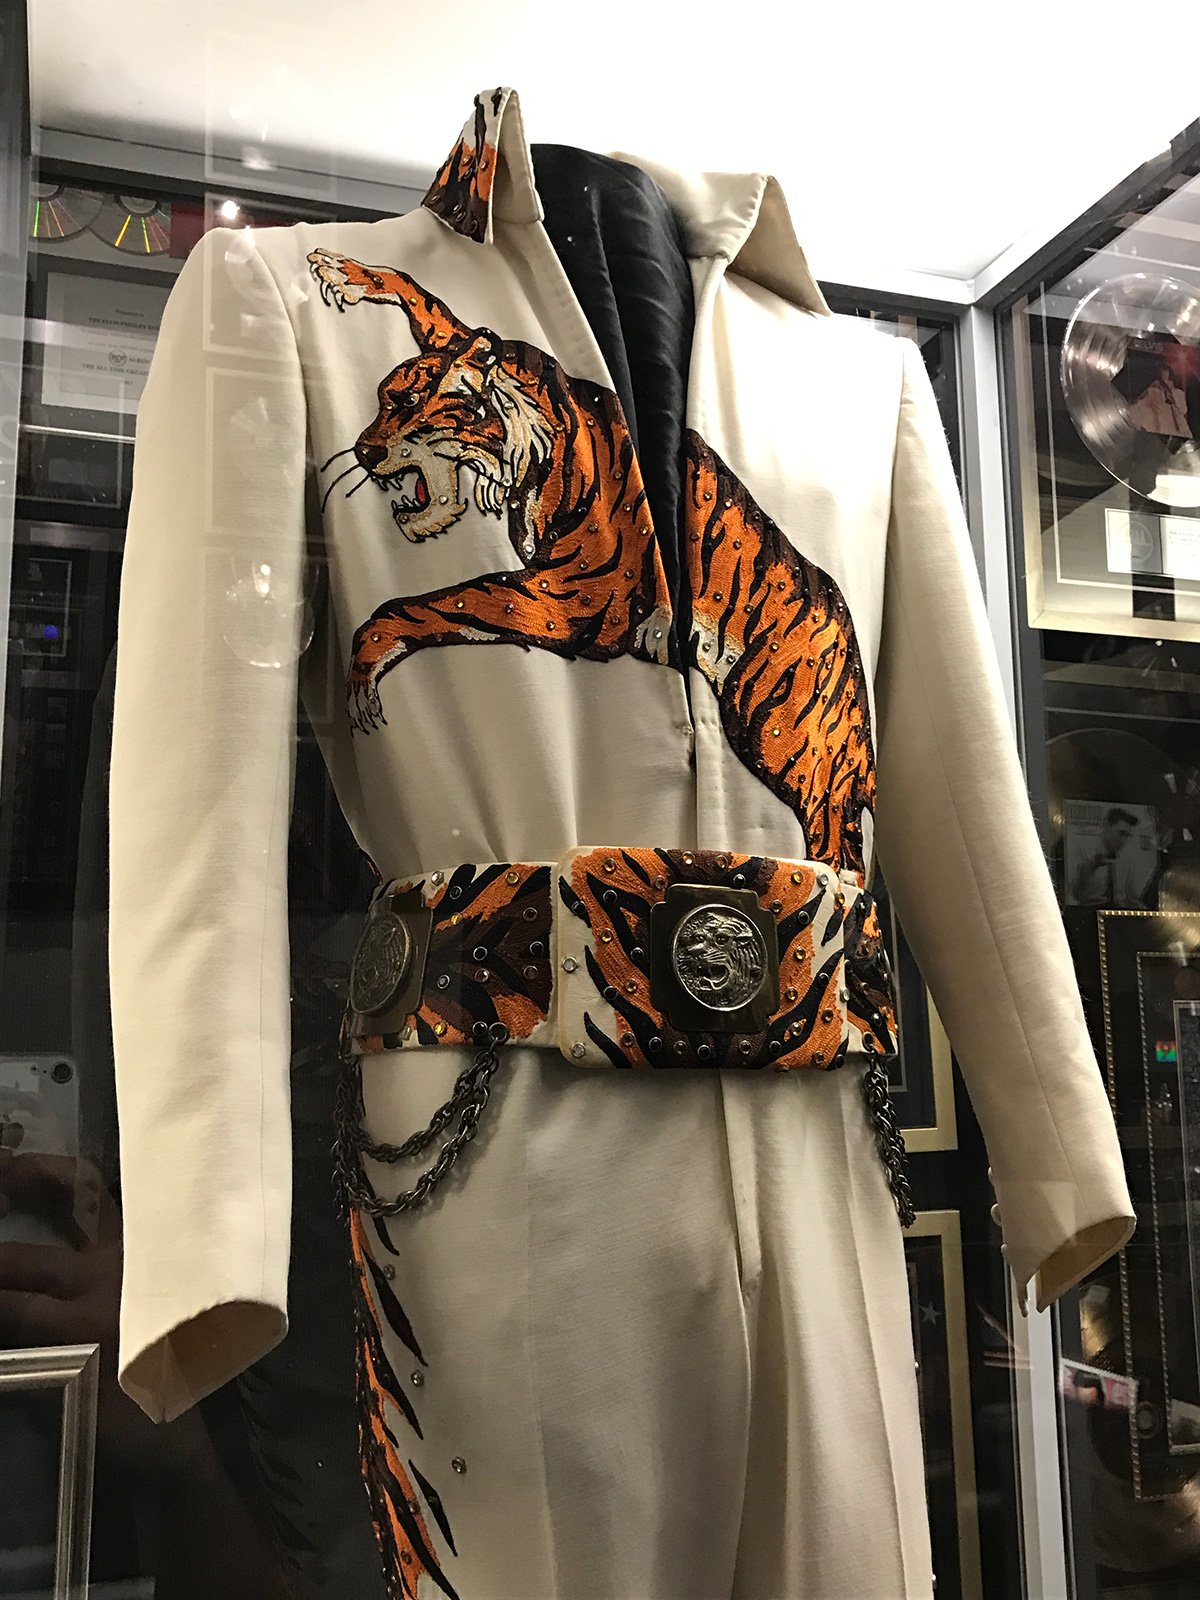 elvis presley tiger suit